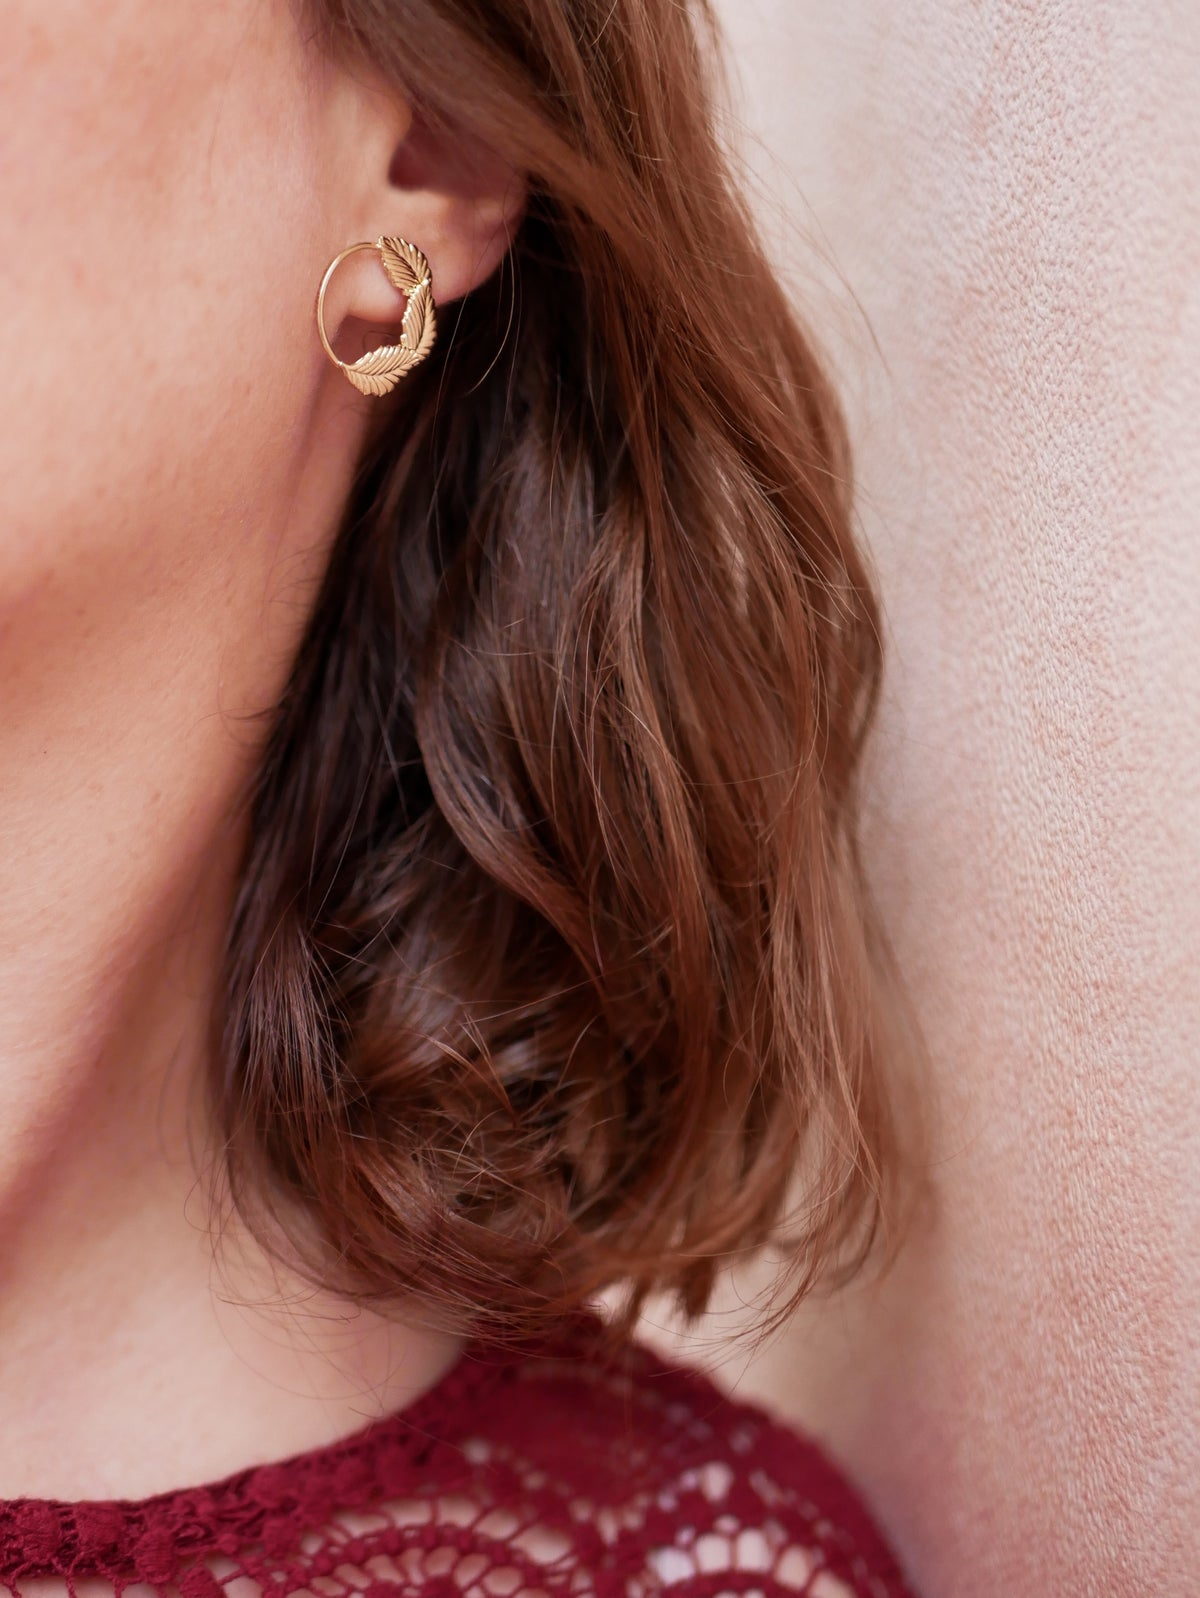 Image of Petites Boucles d'Oreilles OLLY